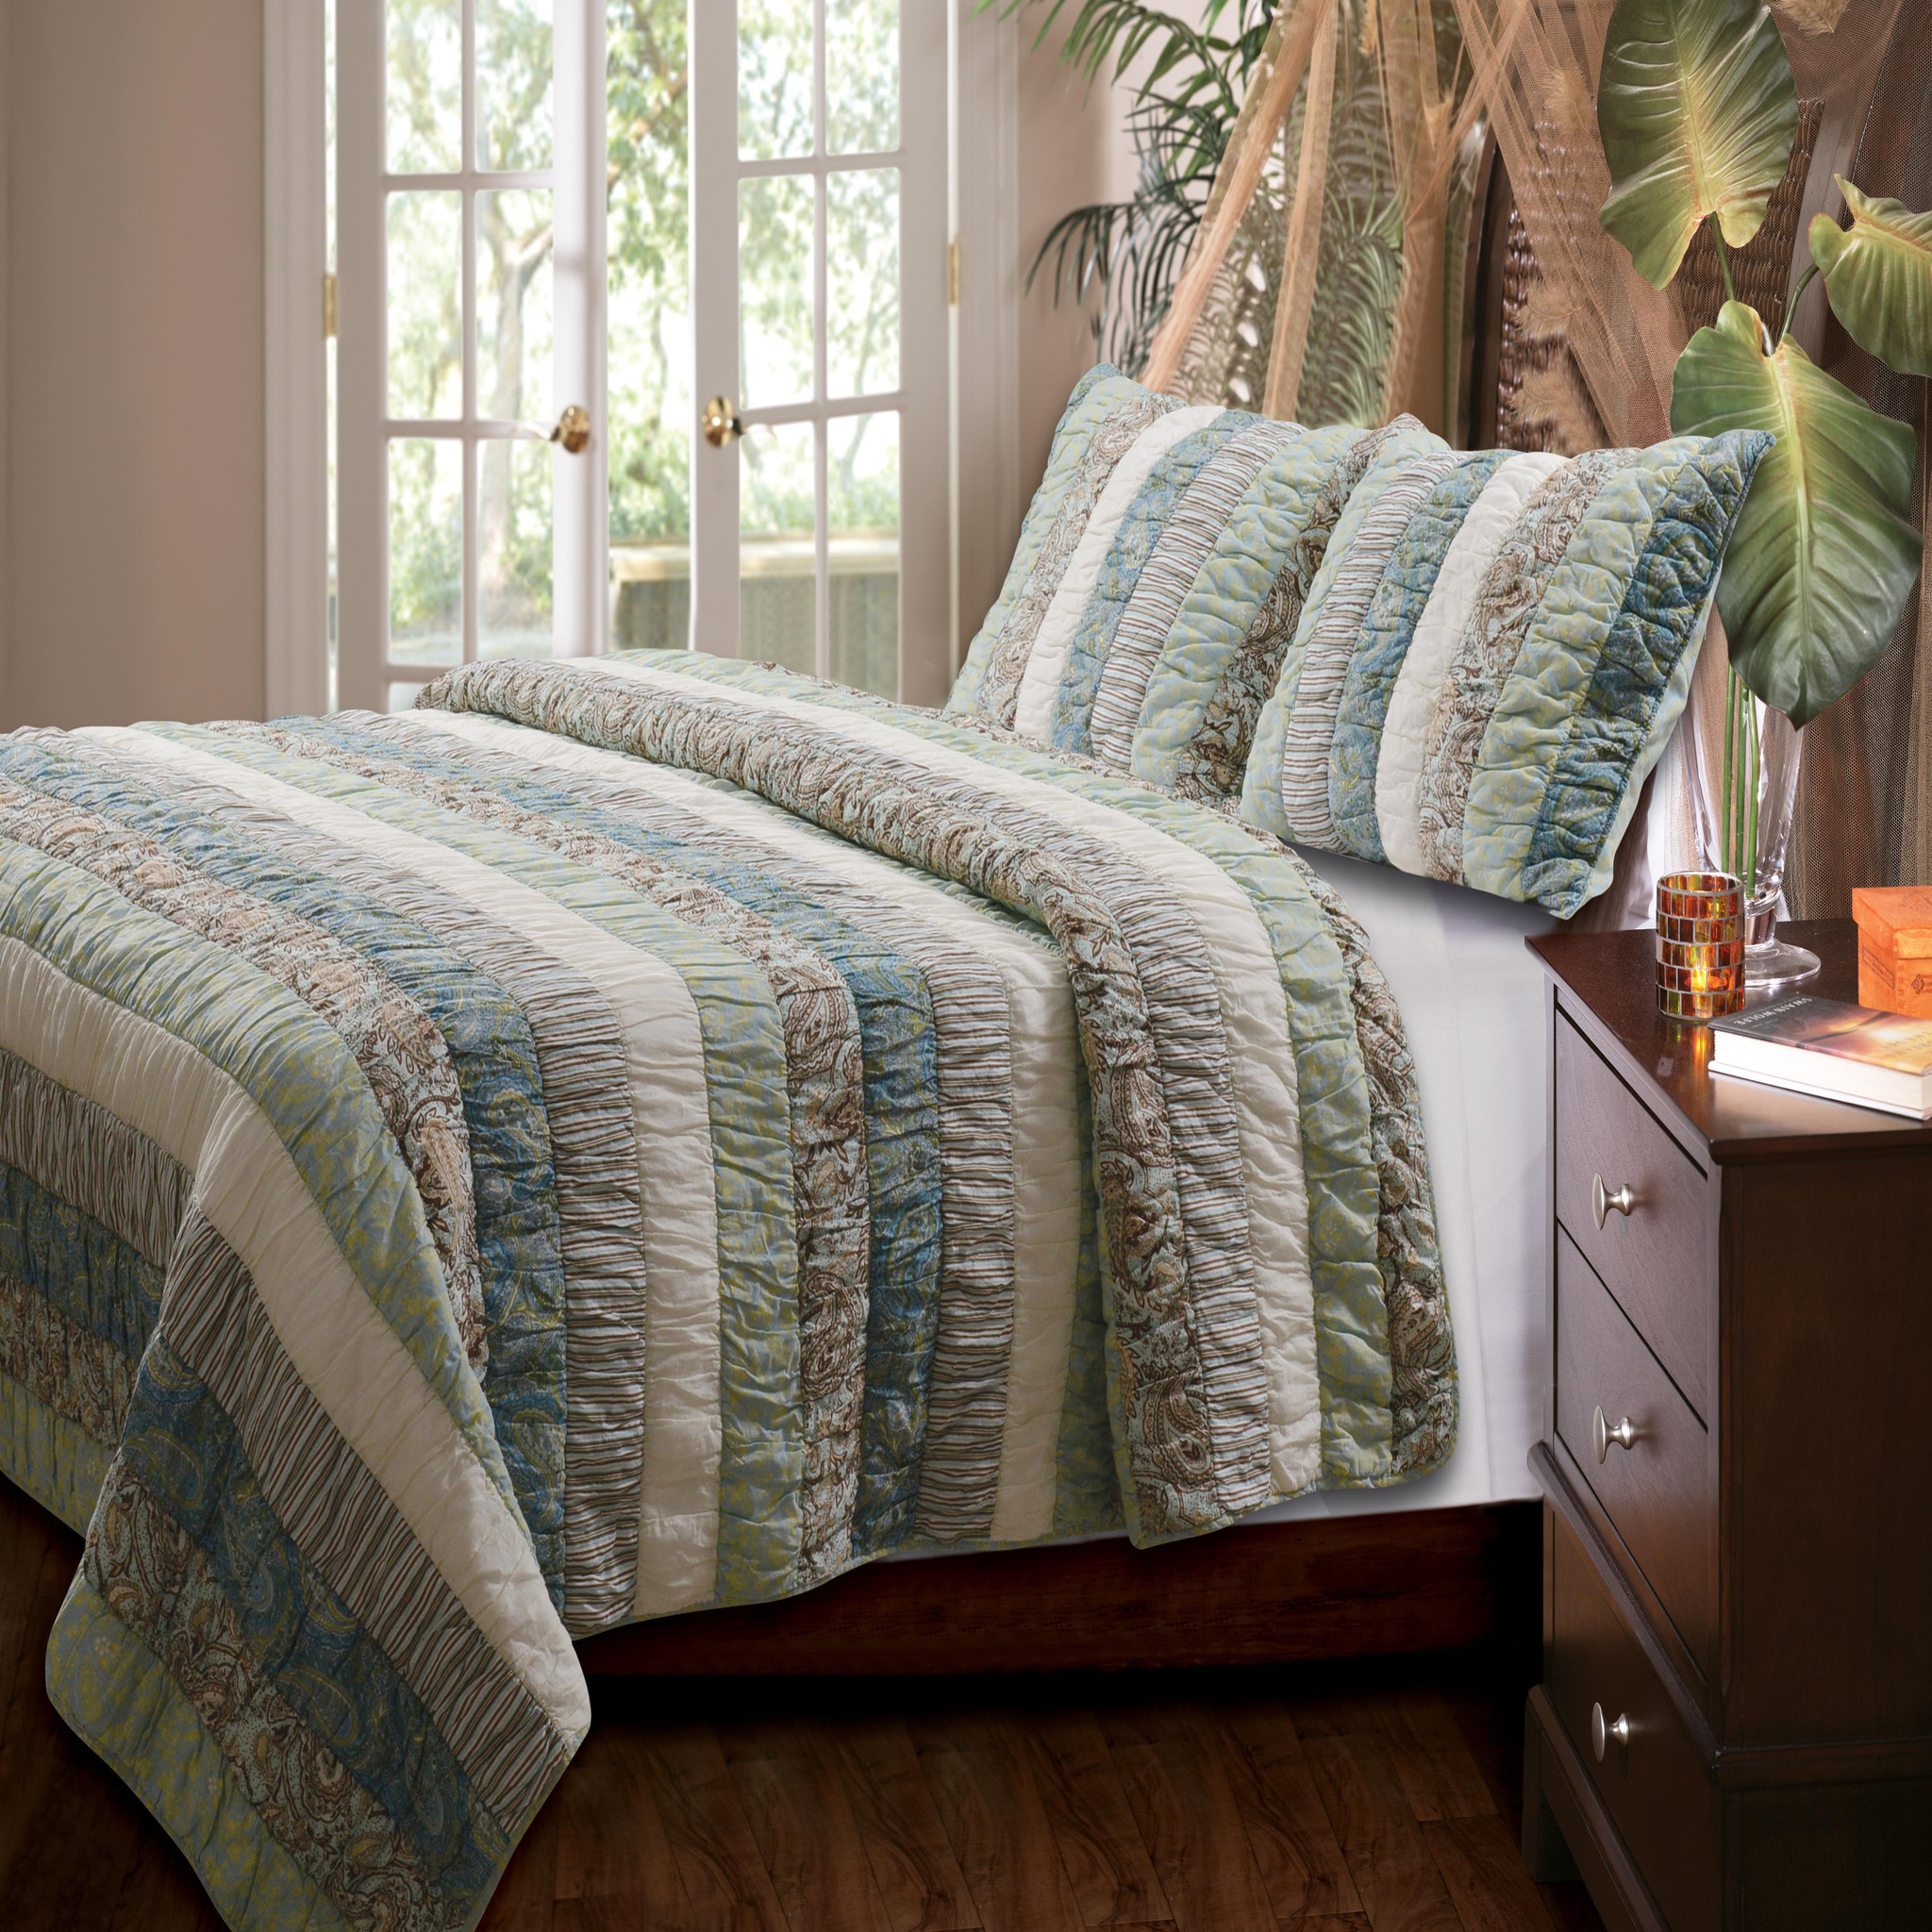 greenland home fashions paradise quilt set - Greenland Home Fashions